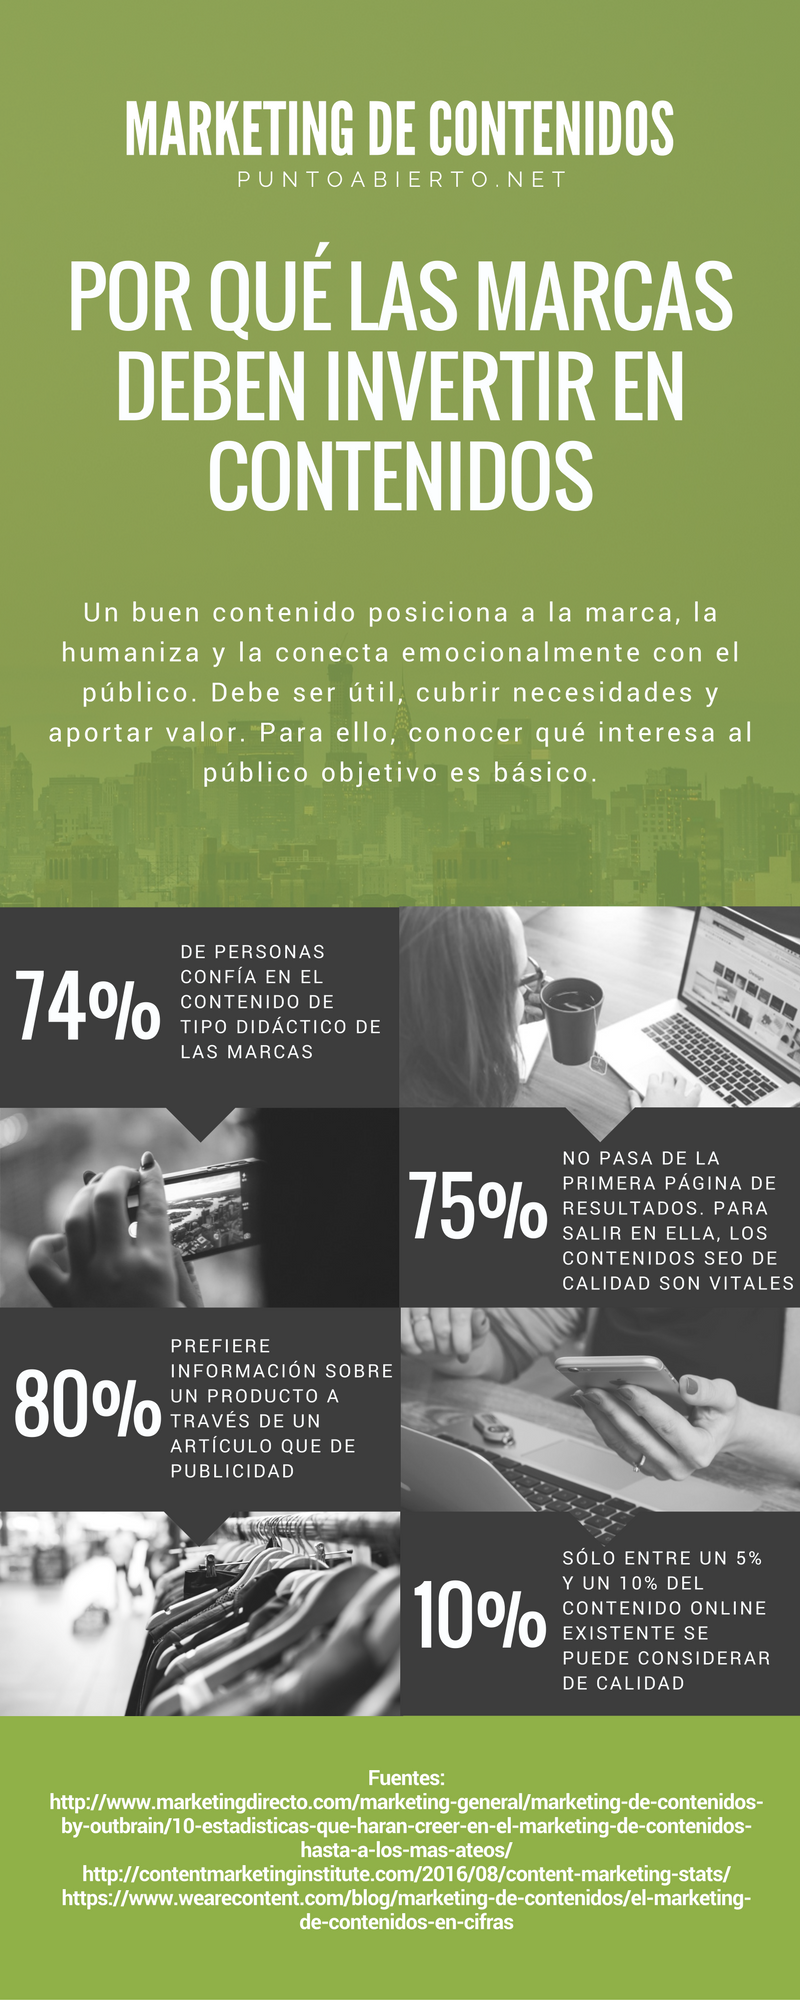 Marketing de contenidos para empresas #infografia #infographic #marketing